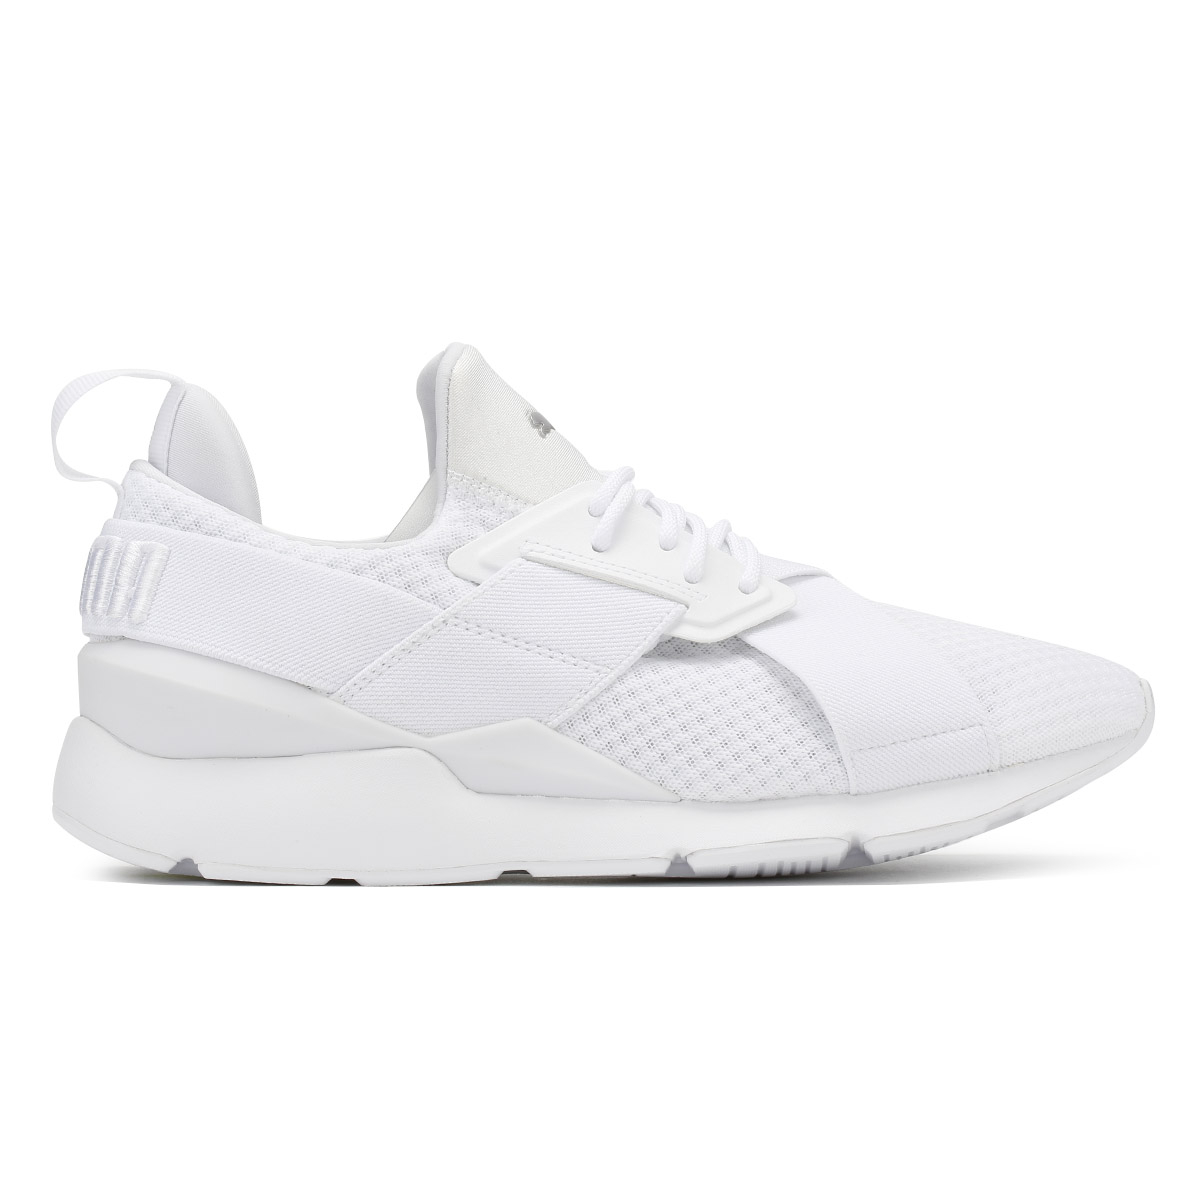 PUMA Damenschuhe WEISS Muse X-Strap EP Trainers Lace Up Sport Casual Running Schuhes